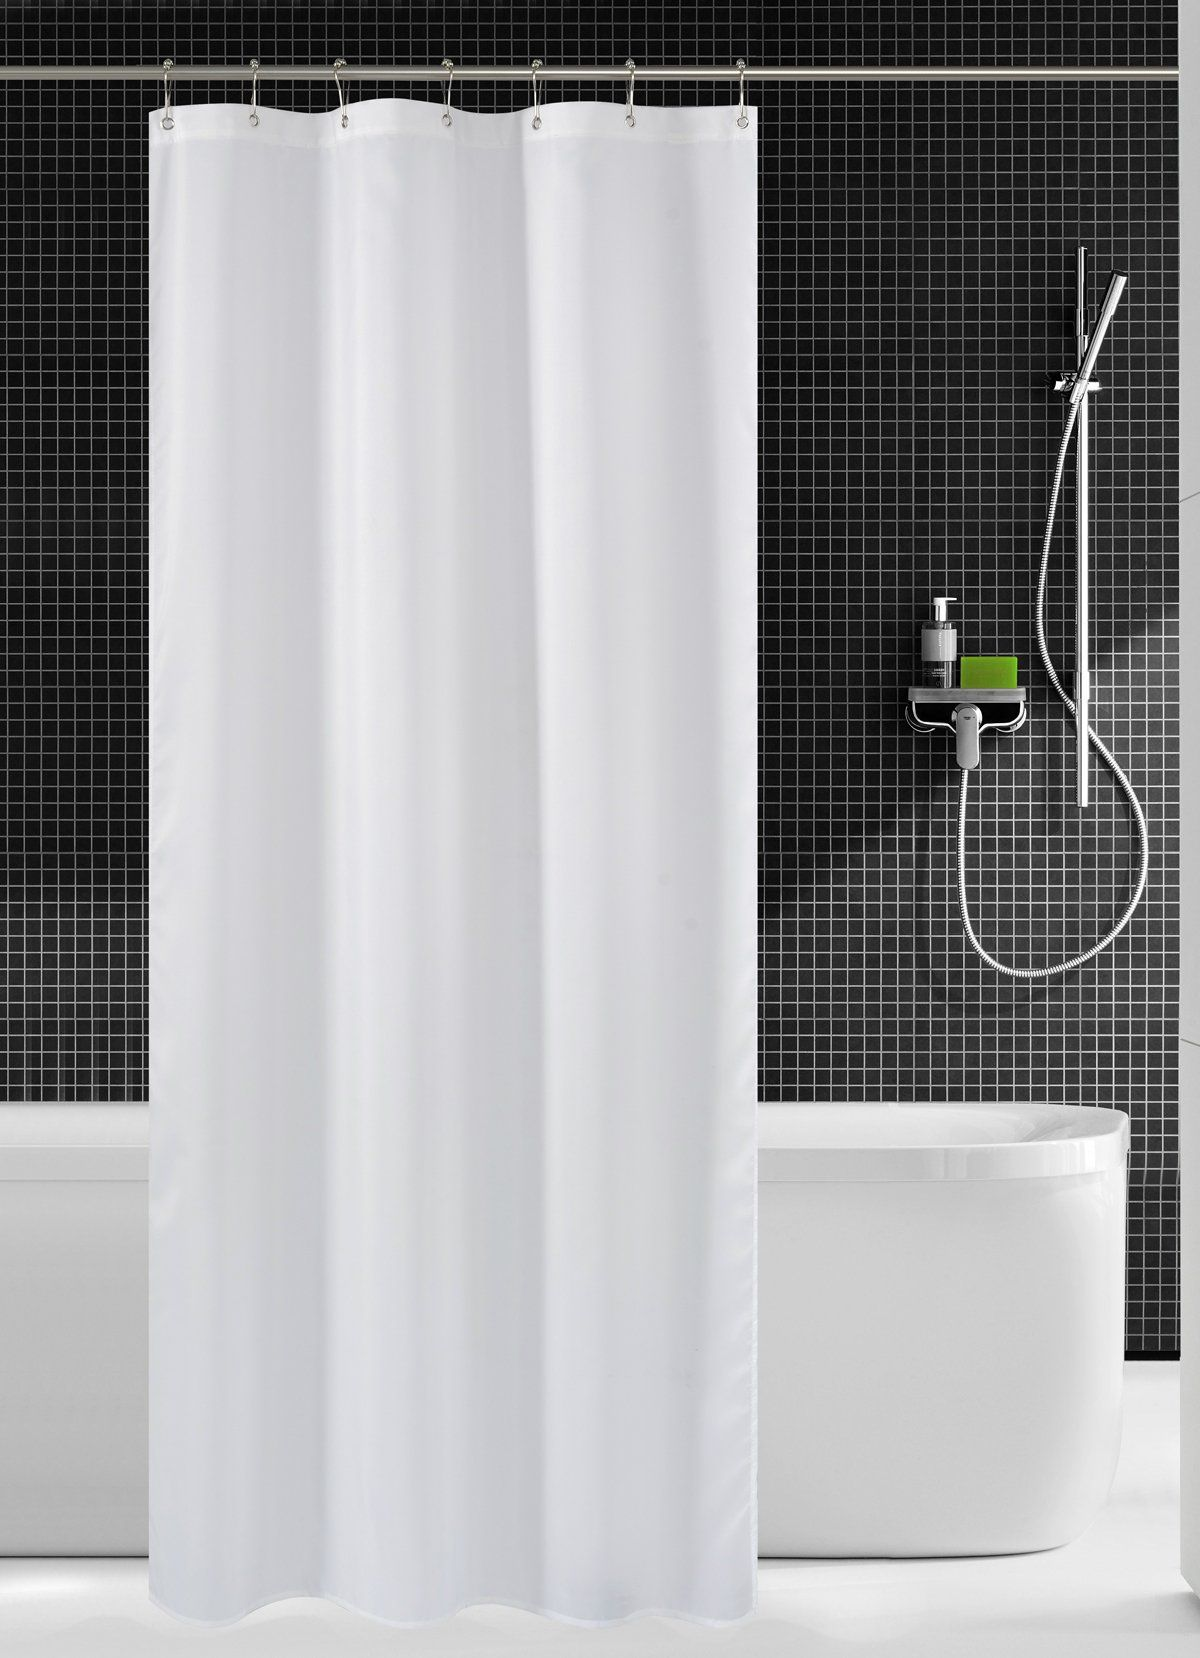 nandy home fabric shower curtain liner